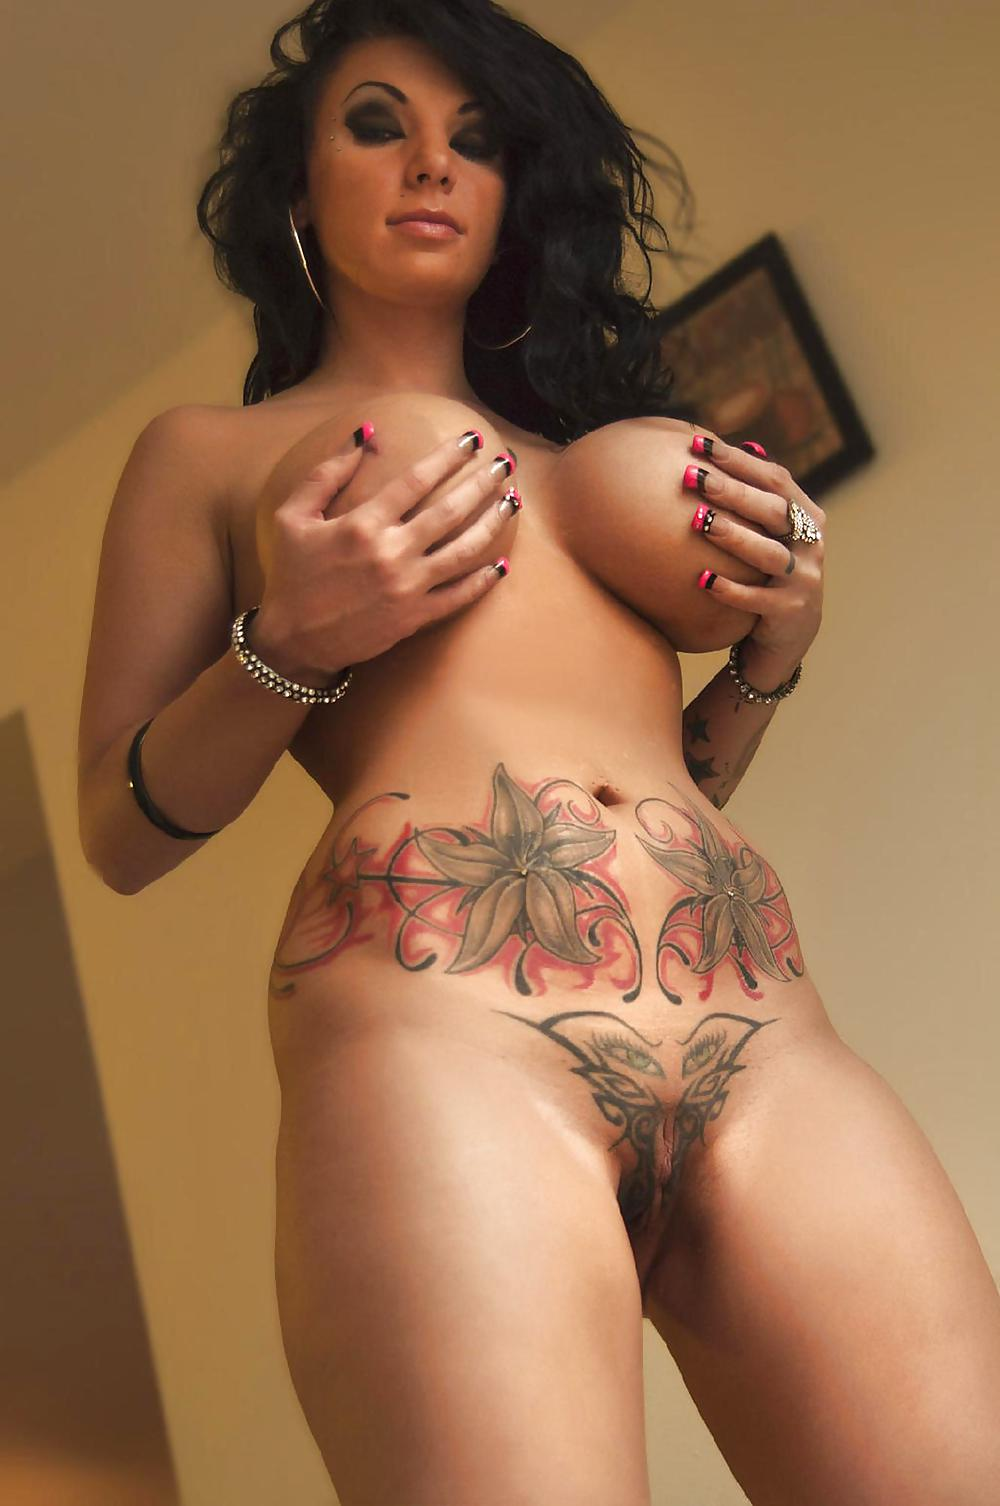 womens-nightys-girl-with-tattoos-on-pussy-wayne-act